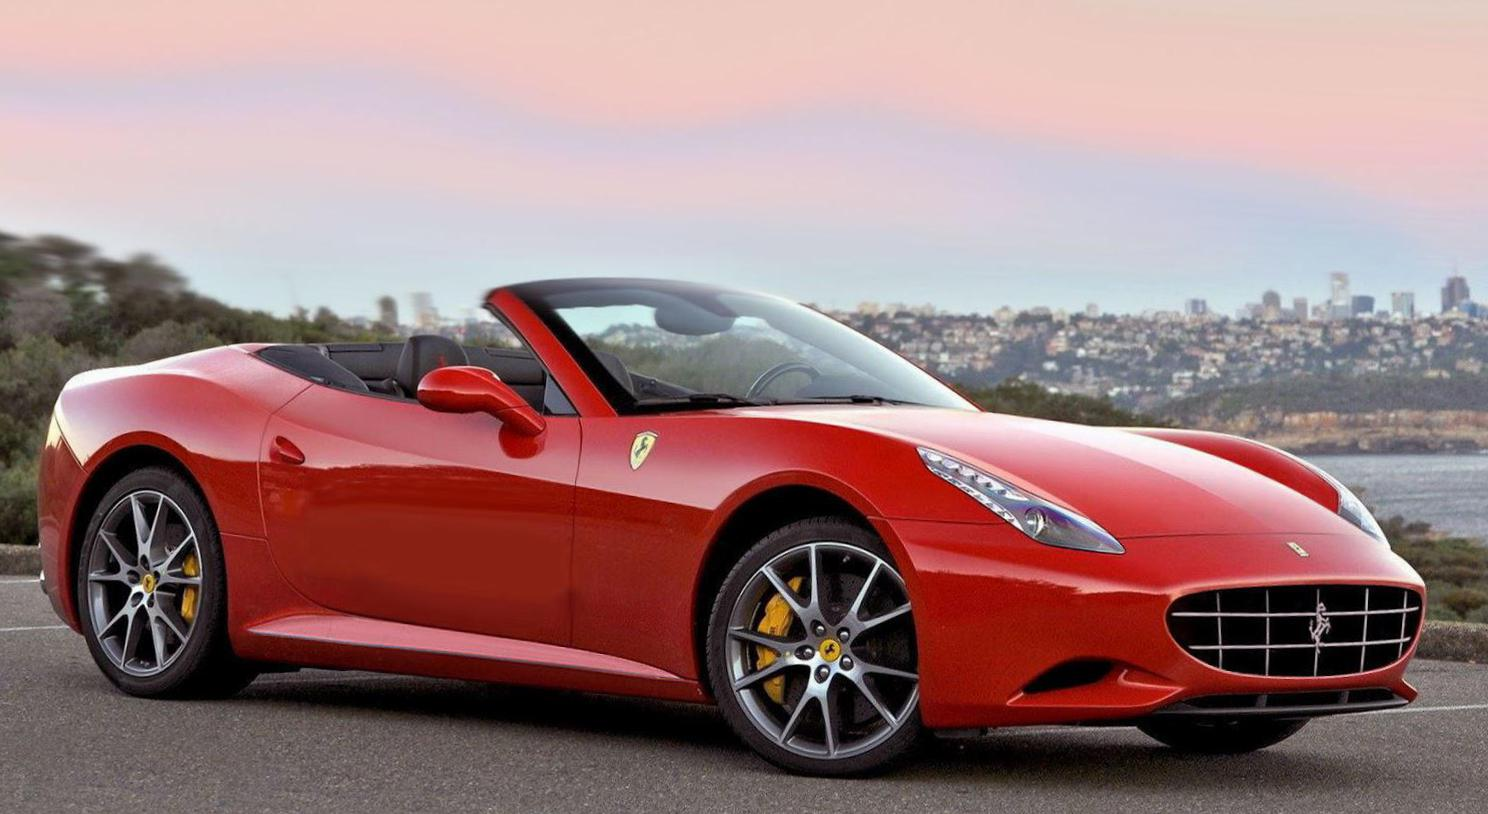 Ferrari California T Photos And Specs Photo California T Ferrari Reviews And 29 Perfect Photos Of Ferrari California T